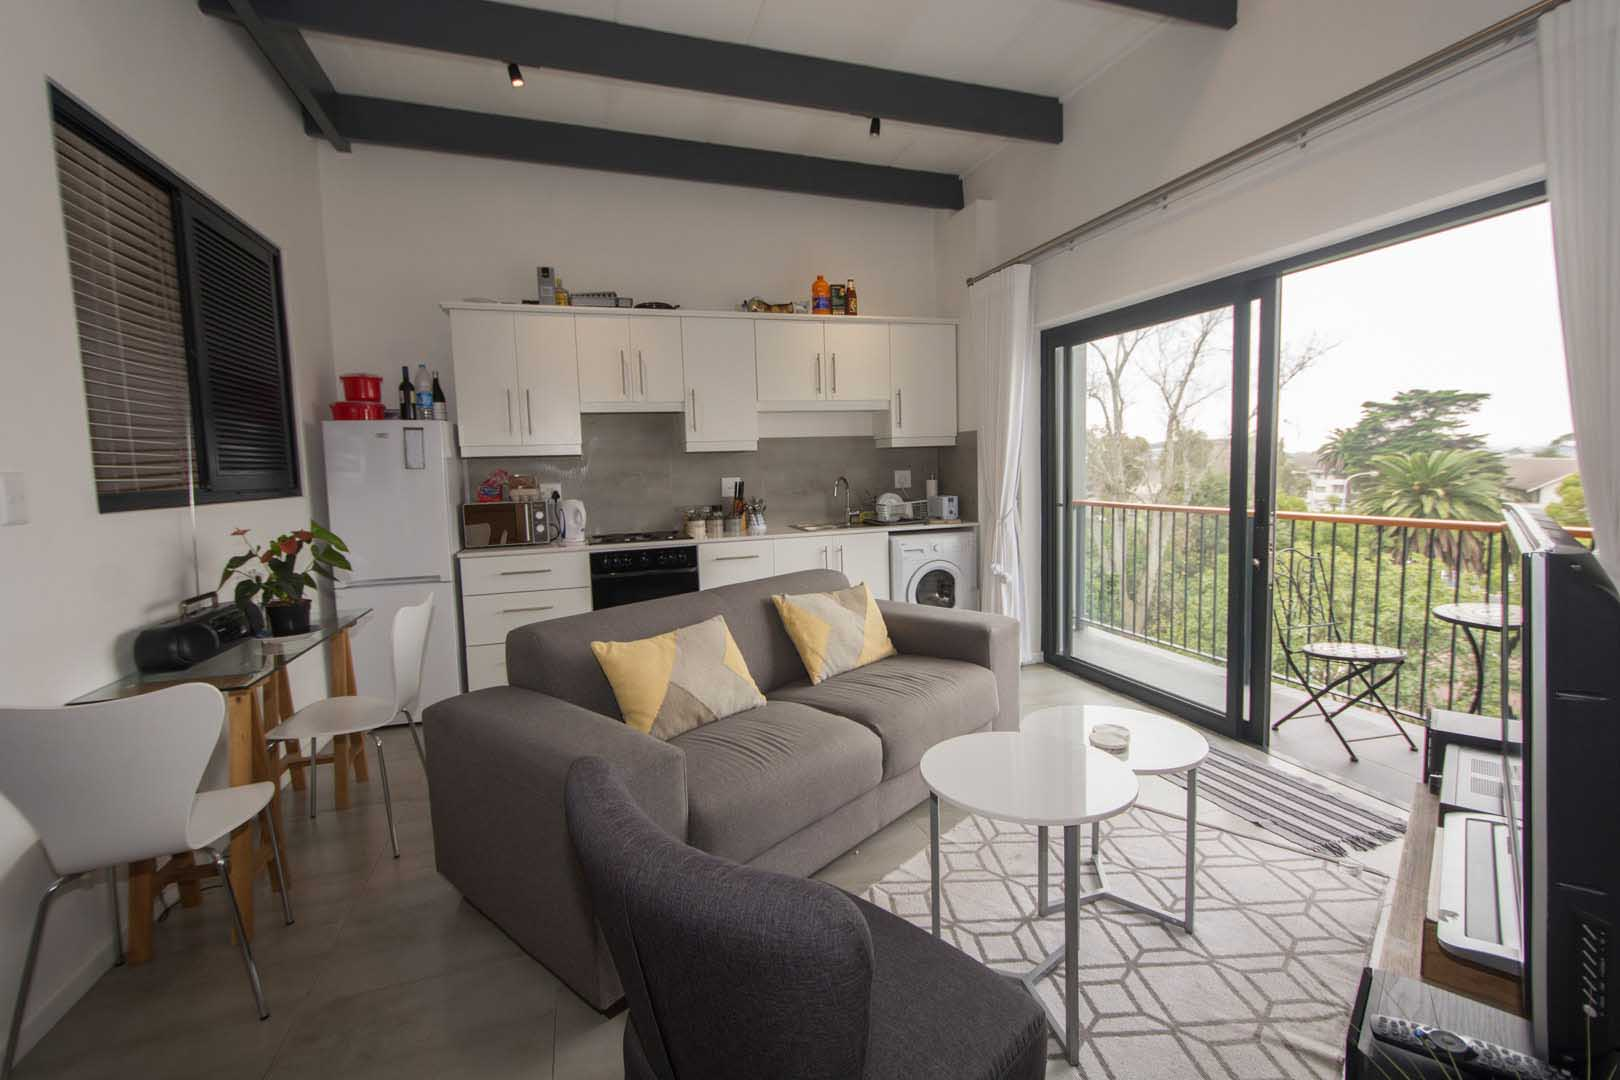 DESIGNER 2 BED APARTMENT with Tenant if required